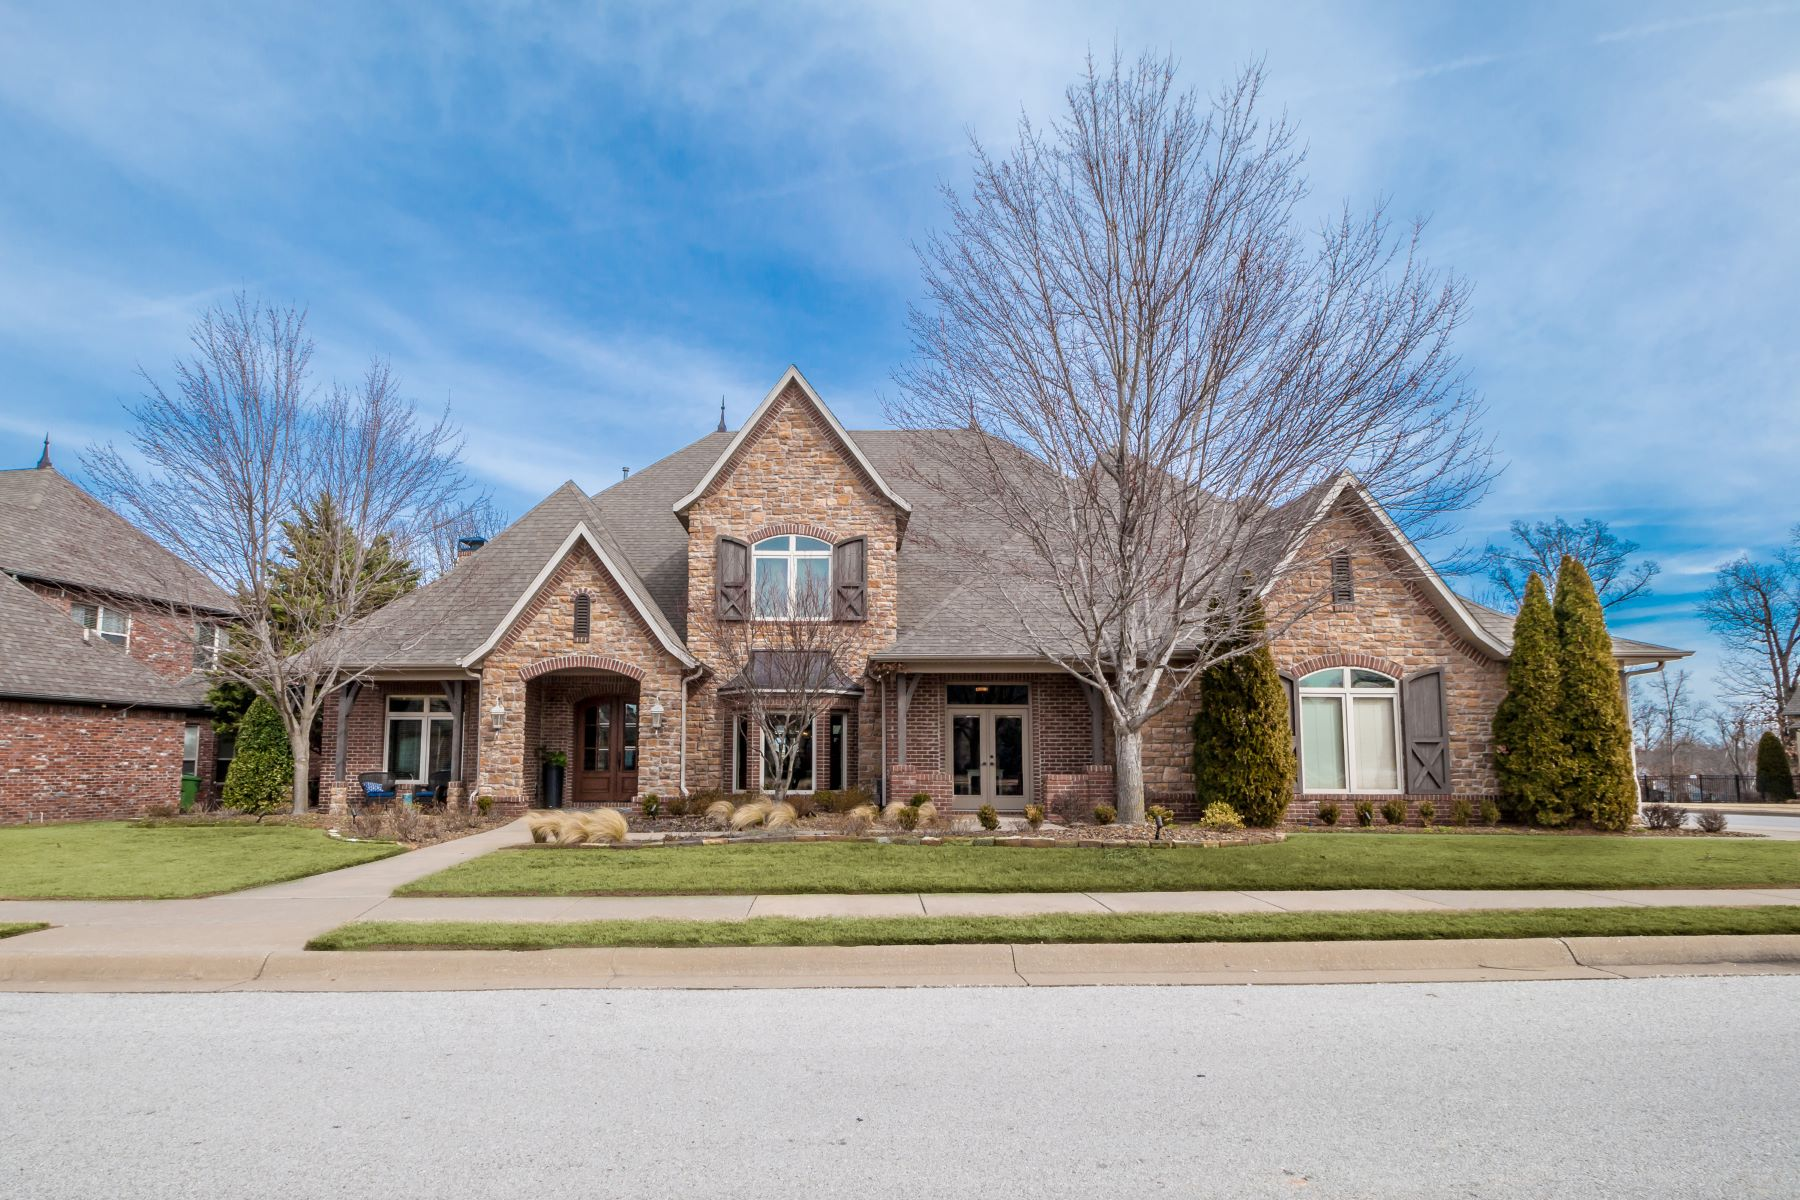 Property for Sale at 7001 W. Balmoral Drive Rogers, Arkansas 72758 United States